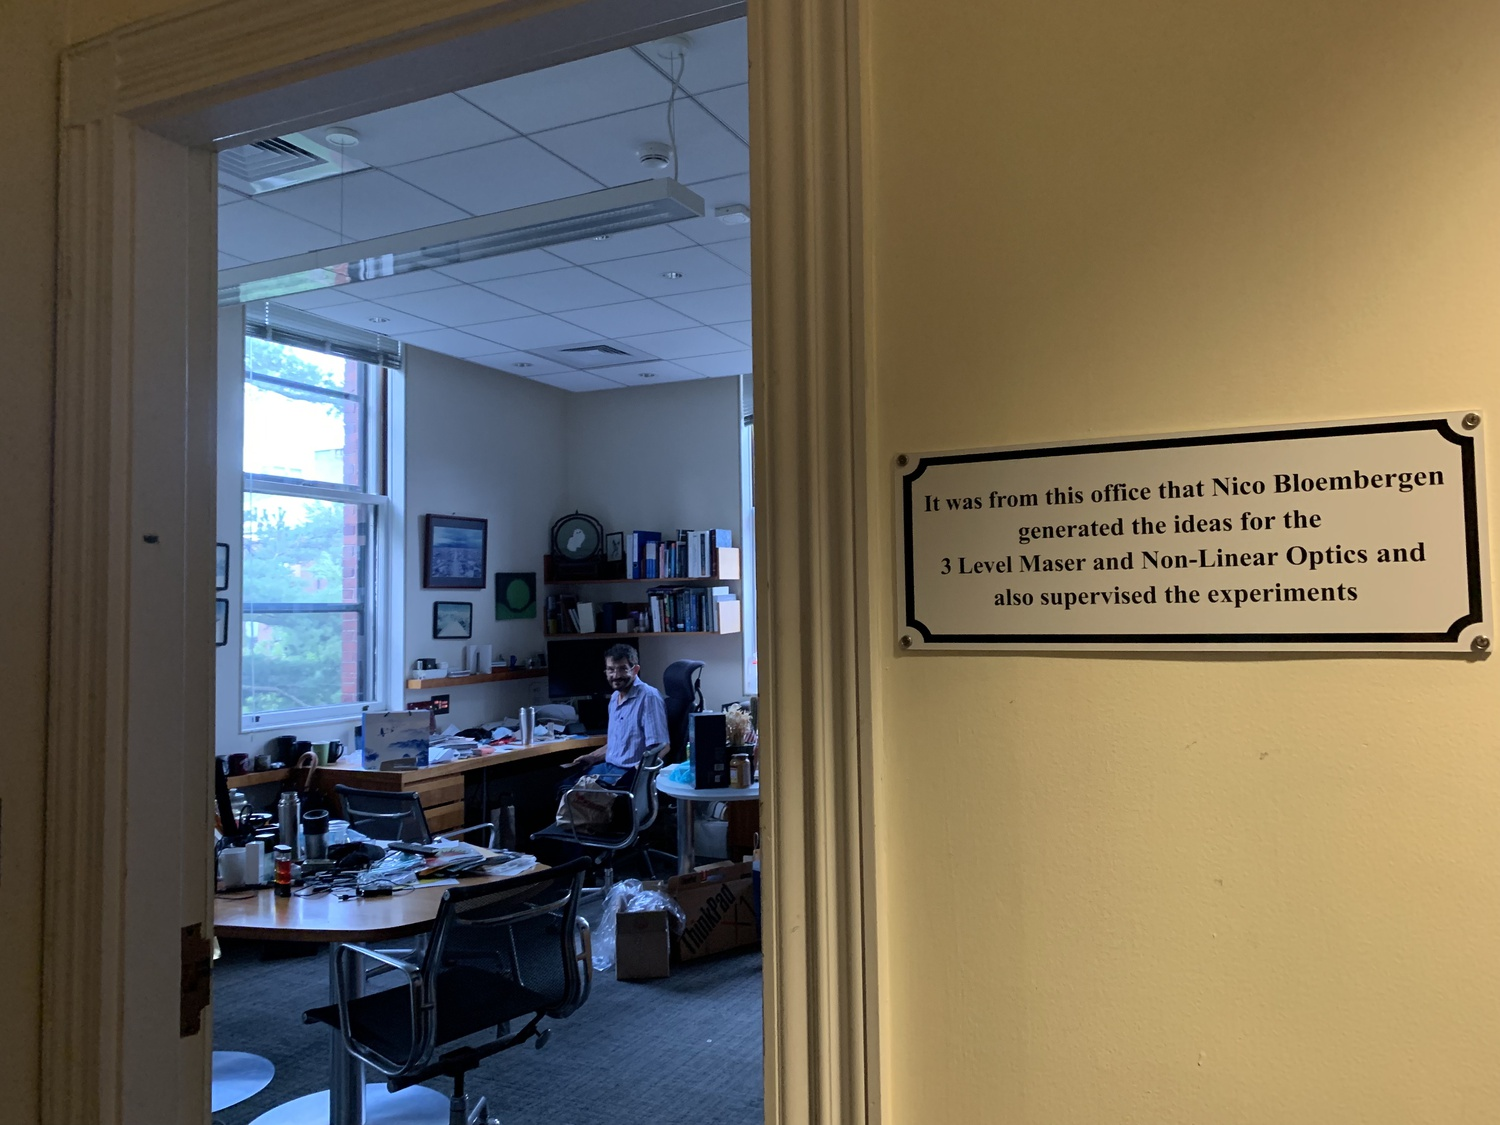 Physics professor David A. Weitz sits in his office in Pierce Hall, a historic building that has housed office multiple Nobel Prize-winning Harvard affiliates such as Nicolaas Bloembergen.